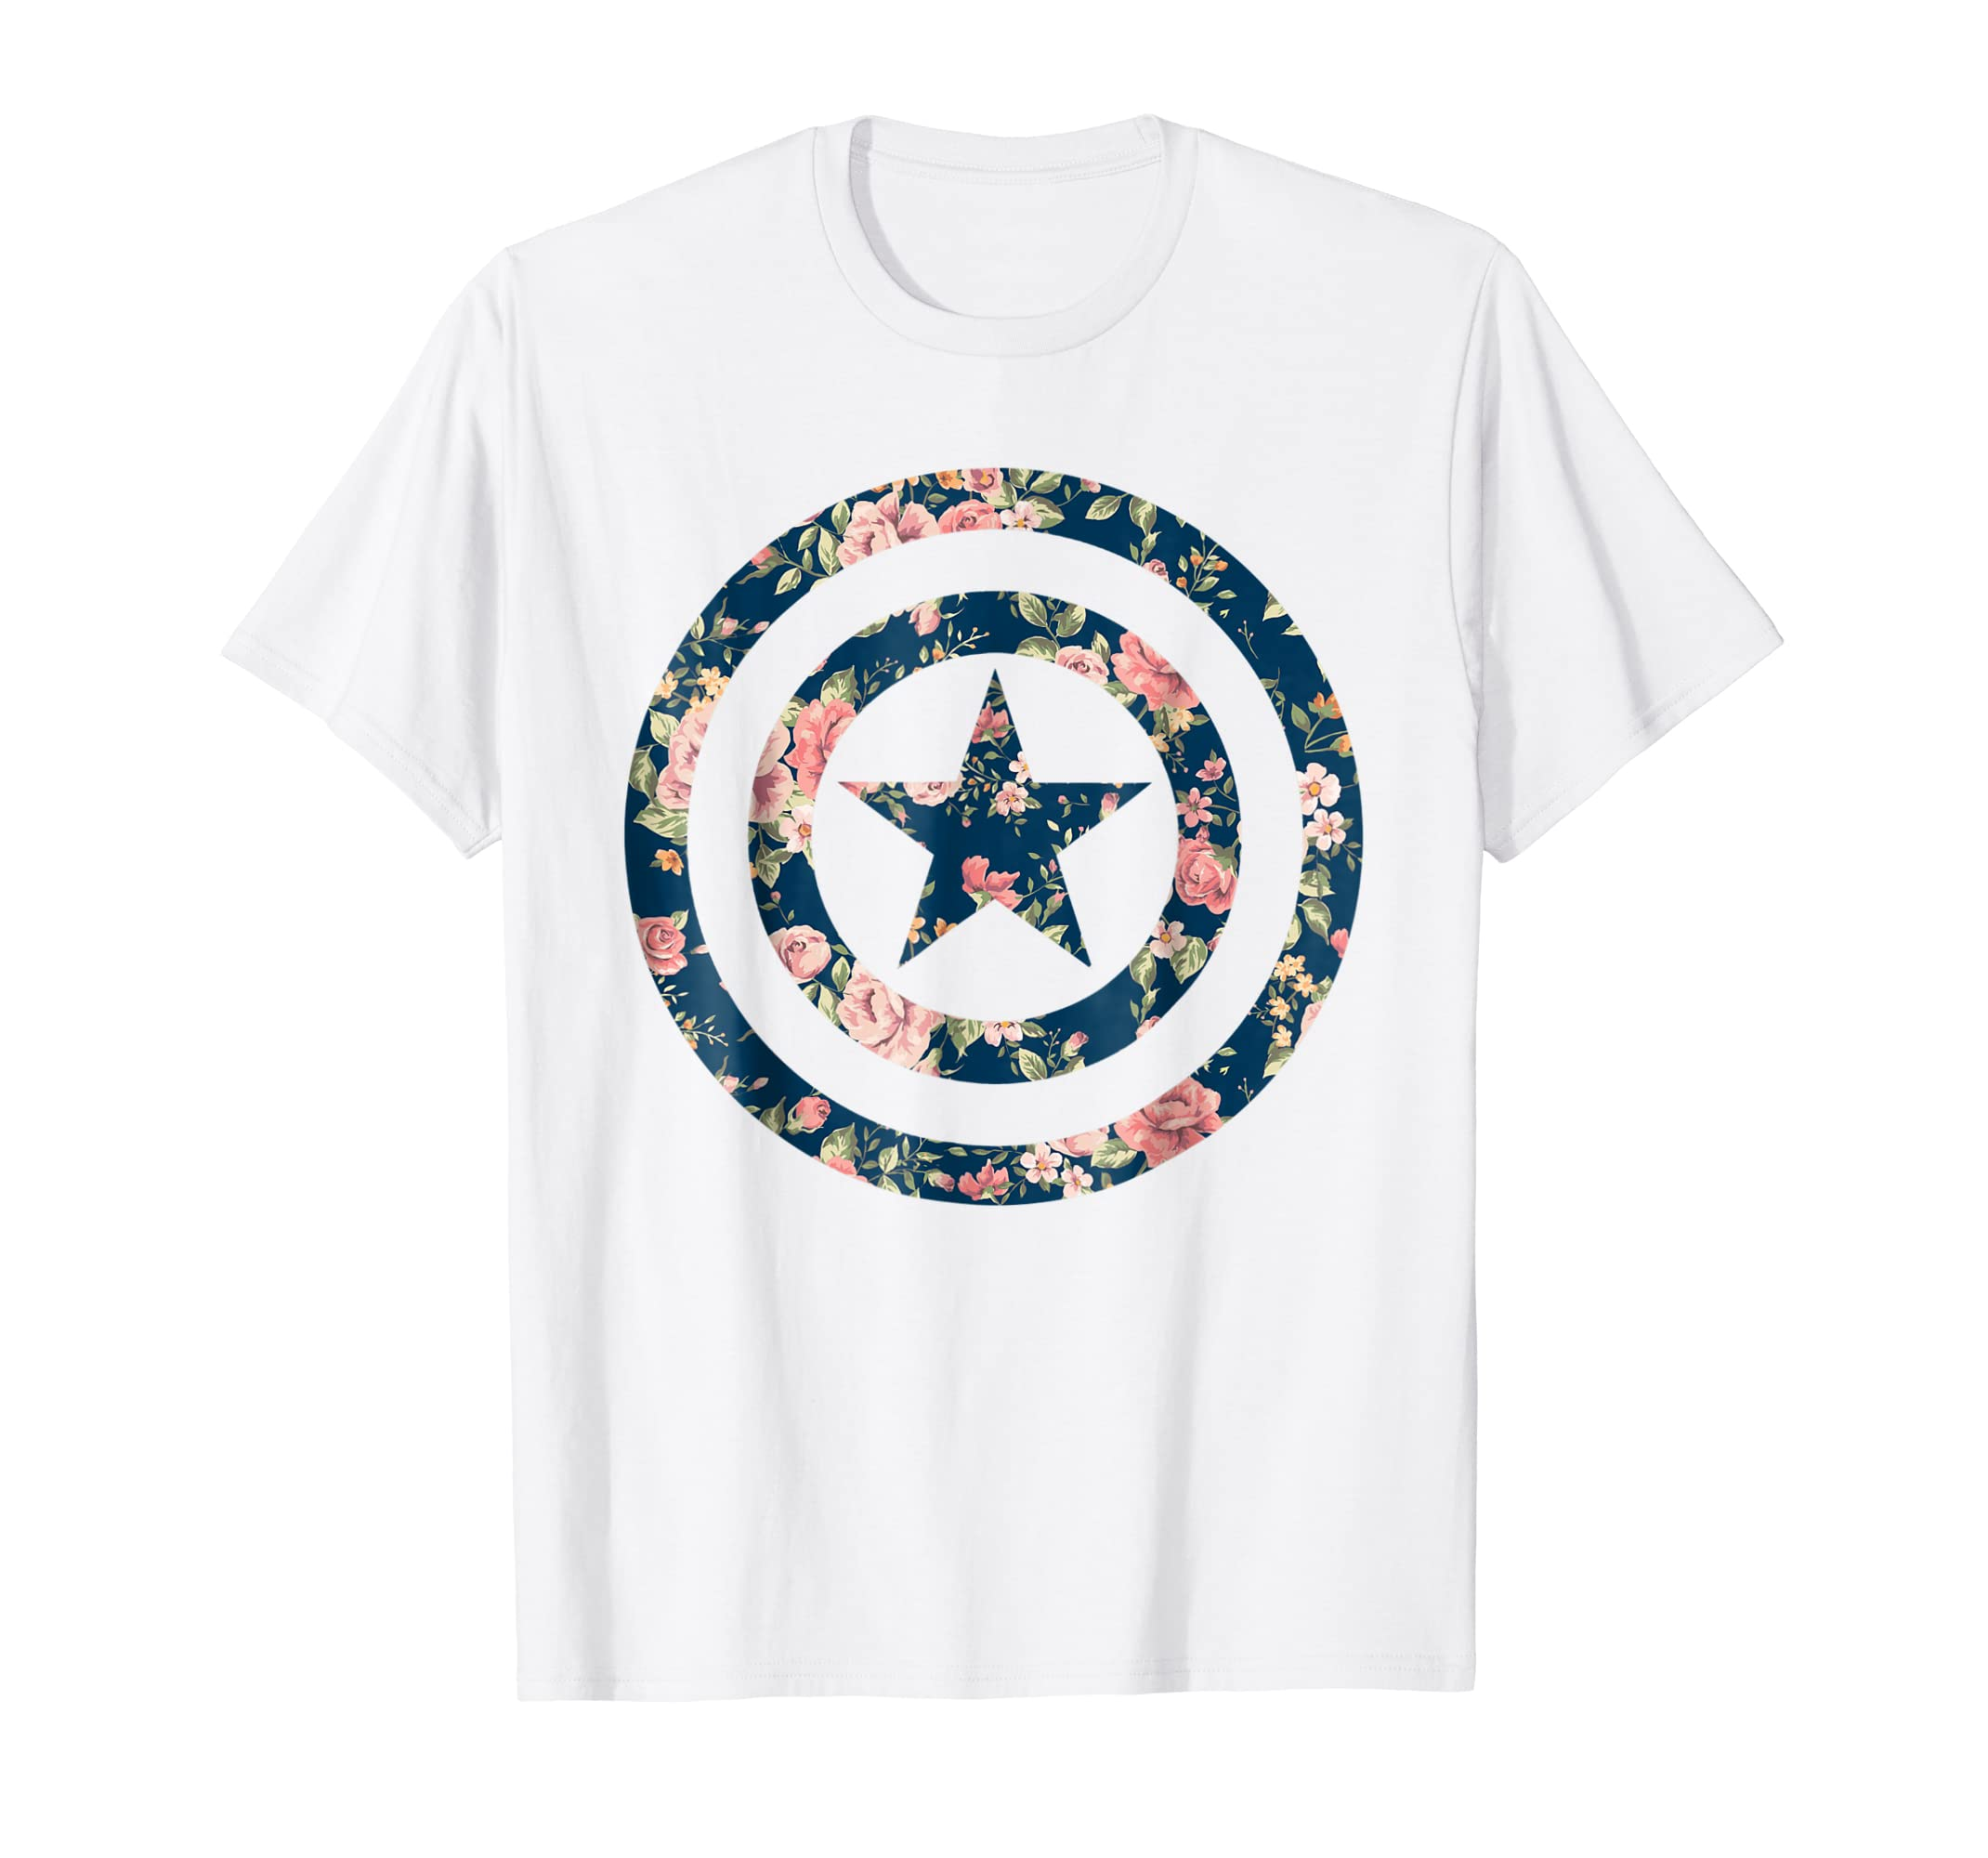 f9623181 Amazon.com: Marvel Avengers Captain America Floral Icon Graphic T-Shirt:  Clothing